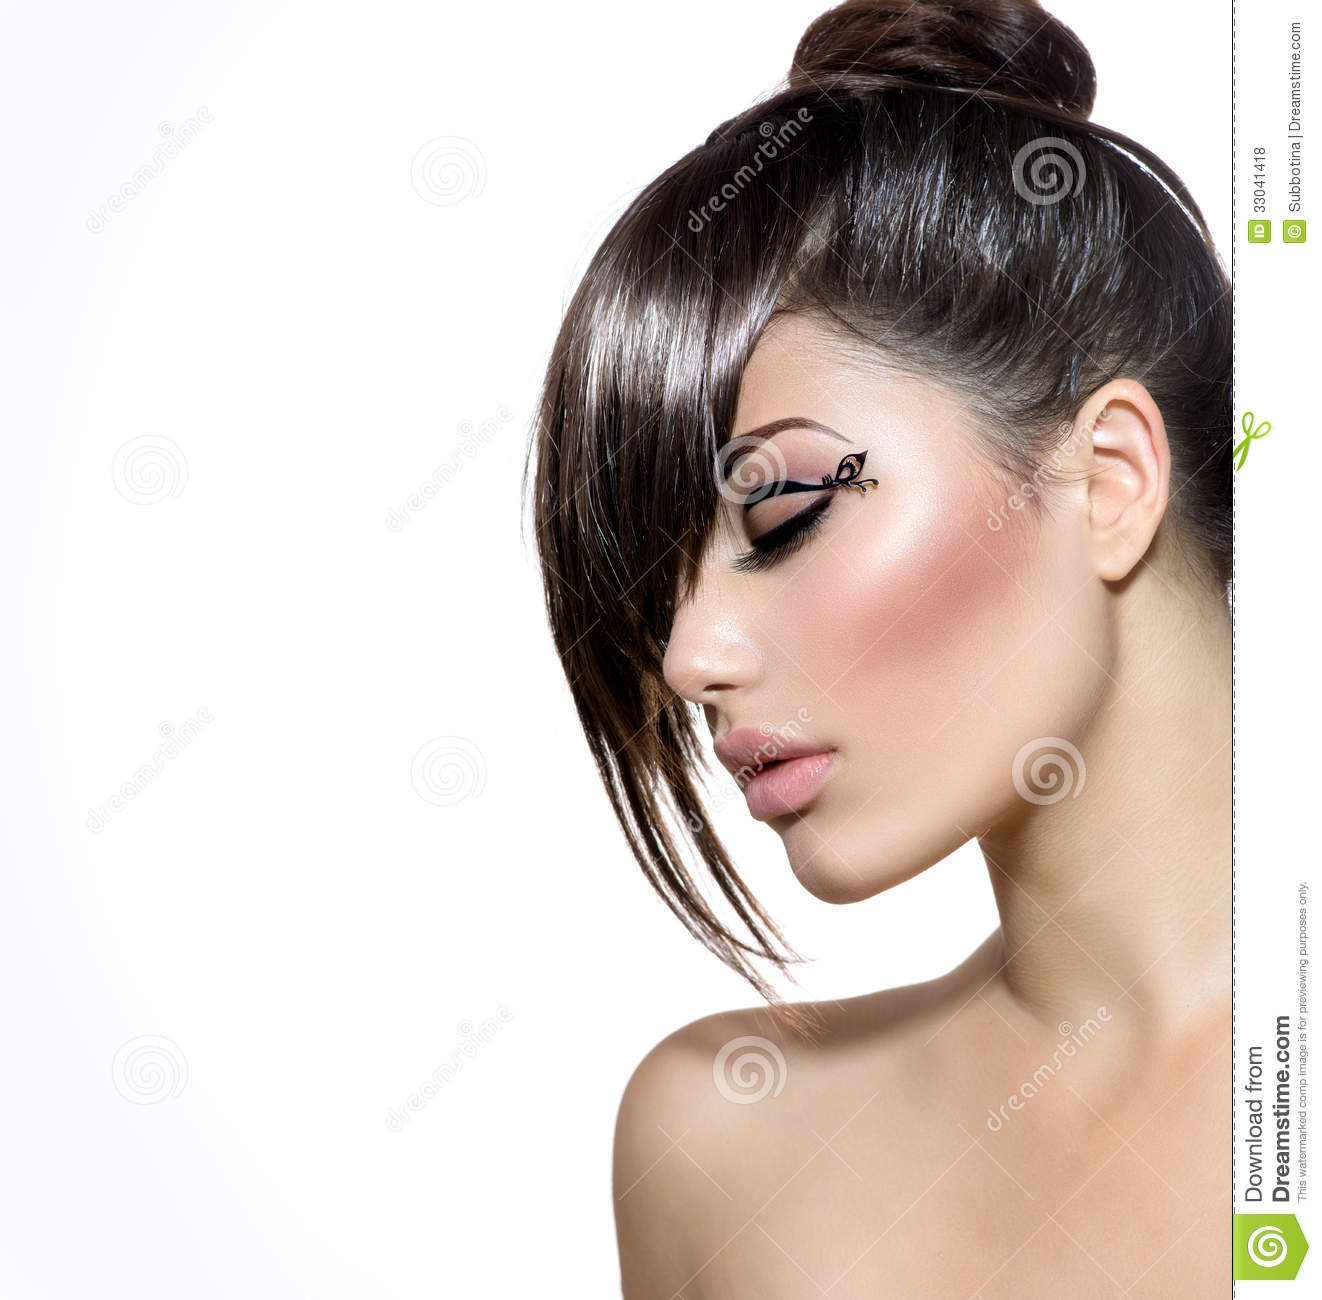 makeup and hair style with stylish hairstyle royalty free stock photos 5269